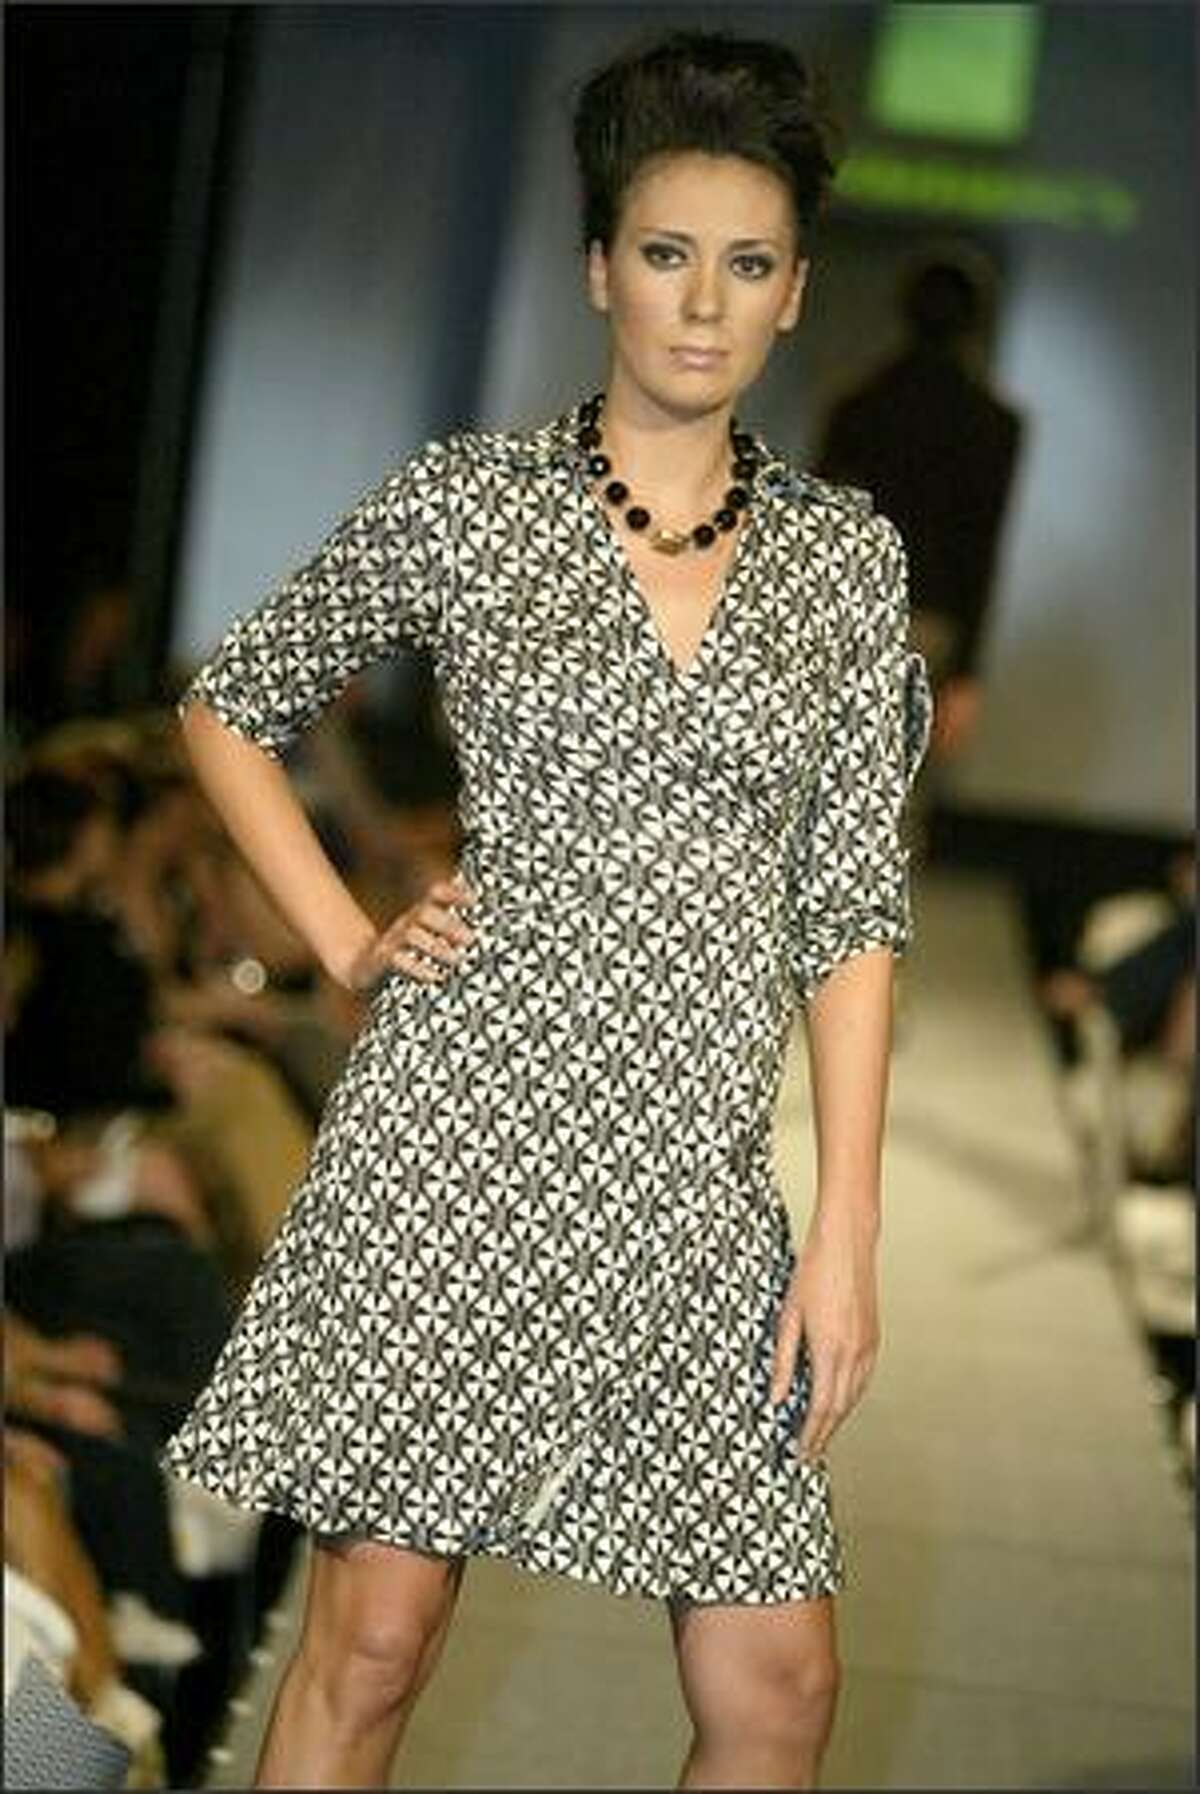 A model shows an outfit from Canopy Blue: Diane von Furstenberg utility wrap dress with jewelry by Juliet Roger.